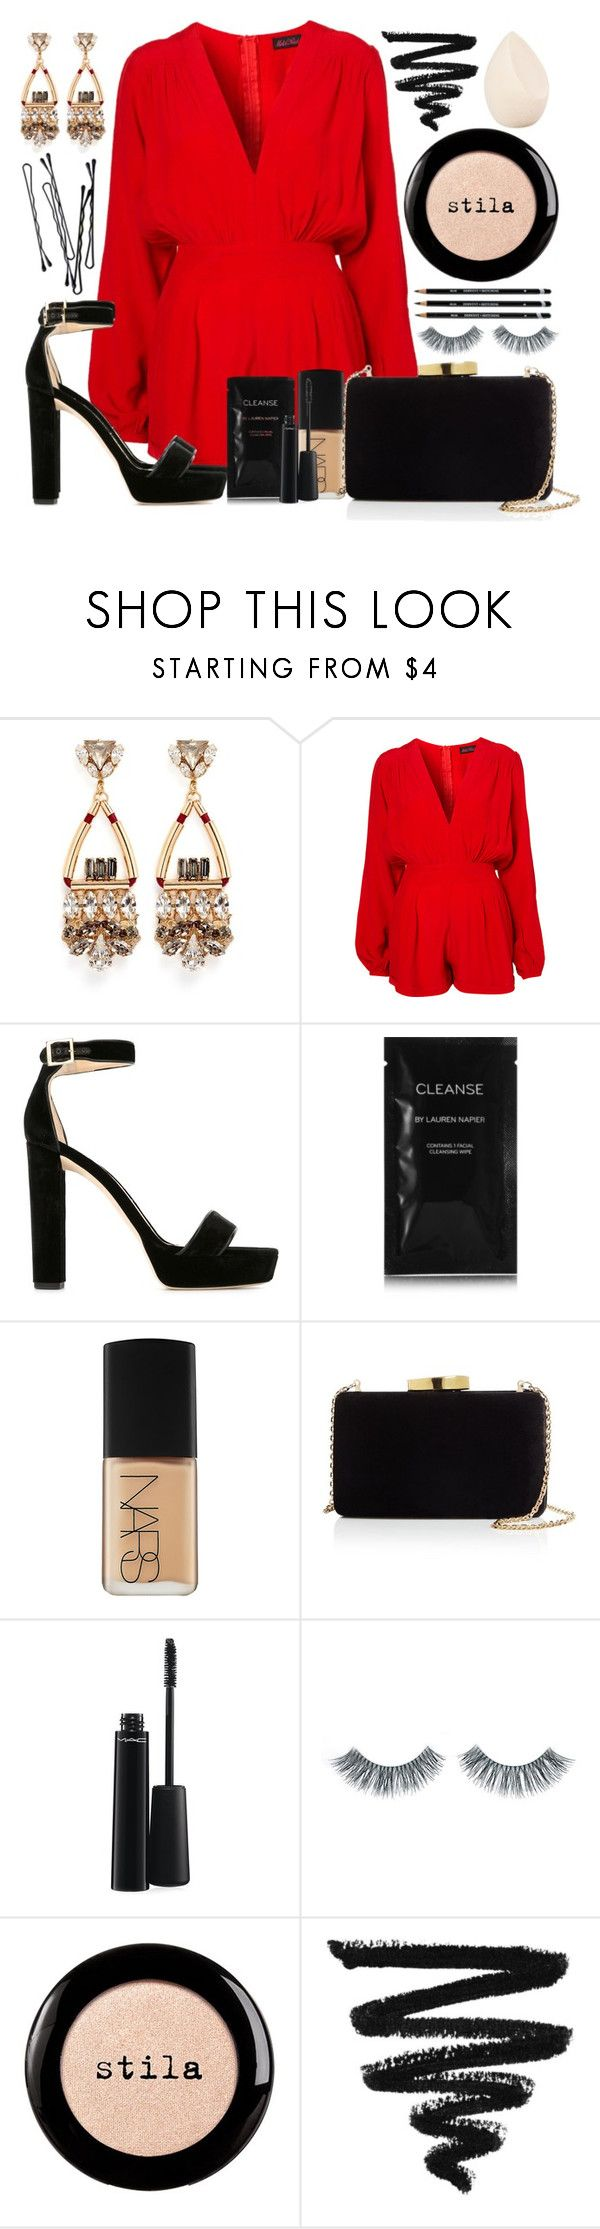 """#37"" by oneandonlyfashion ❤ liked on Polyvore featuring Anton Heunis, Motel, Jimmy Choo, Cleanse by Lauren Napier, NARS Cosmetics, Kayu, MAC Cosmetics, BOBBY, Napoleon Perdis and Stila"